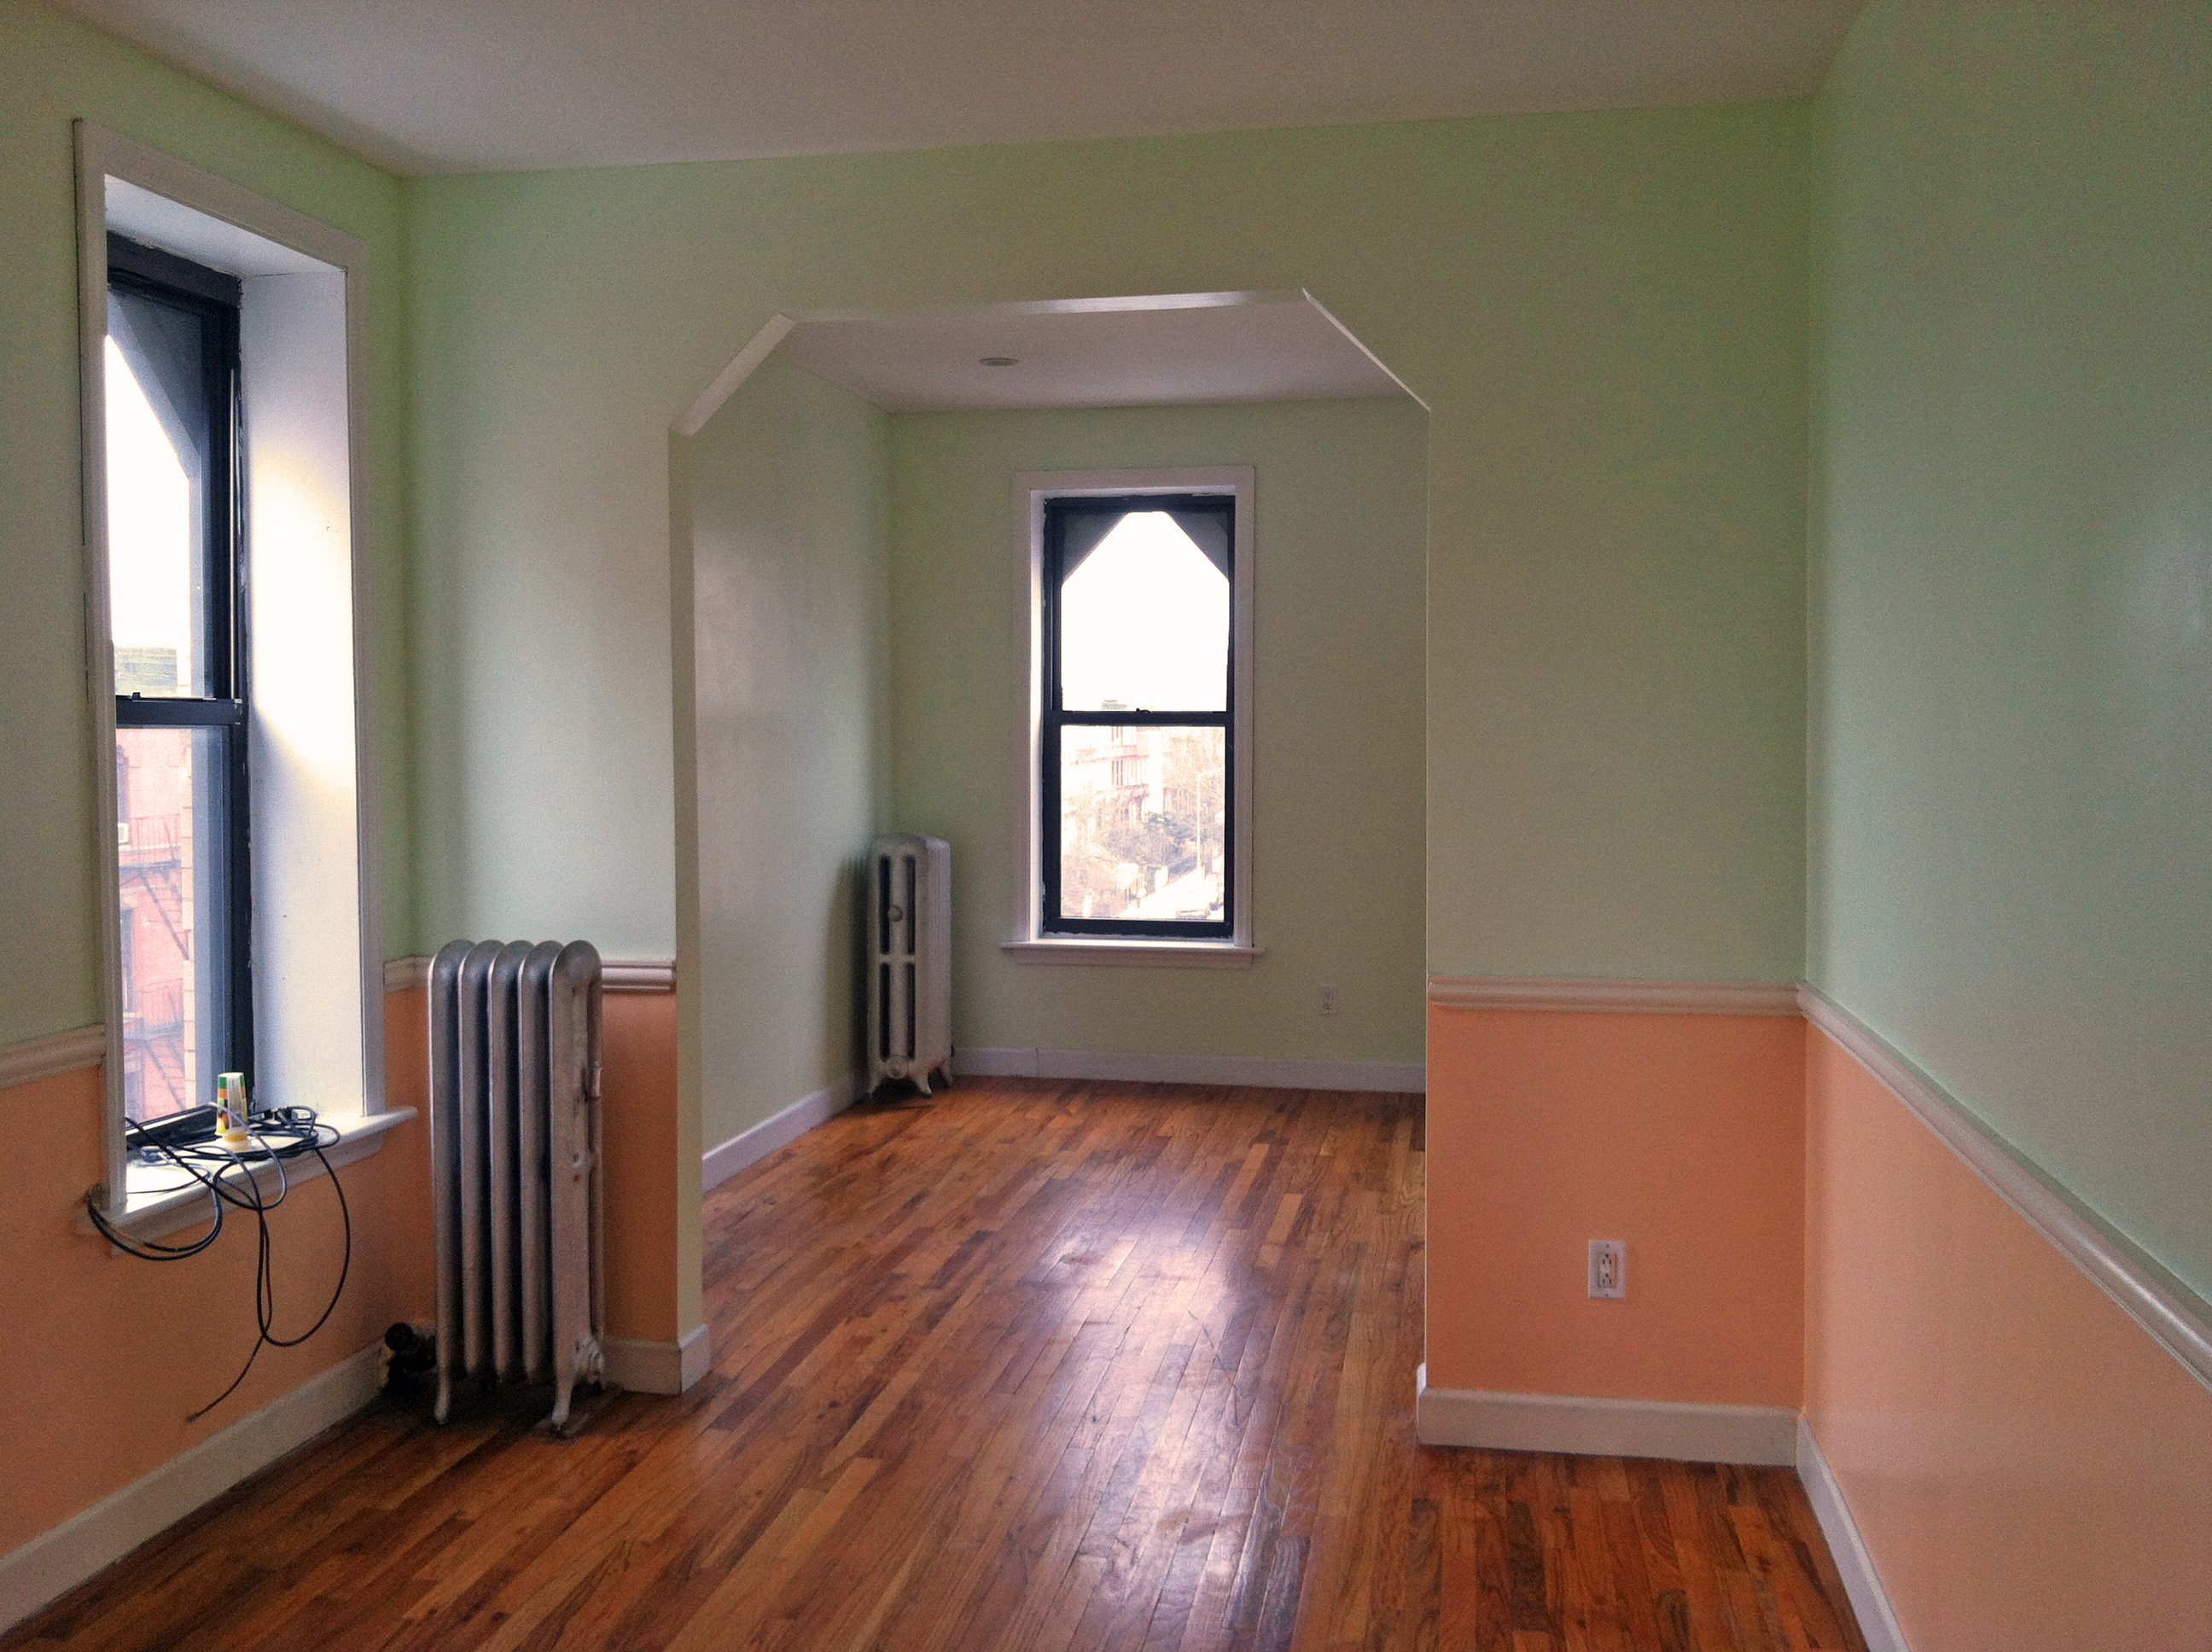 Crown heights 2 bedroom apartment for rent brooklyn crg3120 for Two bedroom apt in bed stuy area